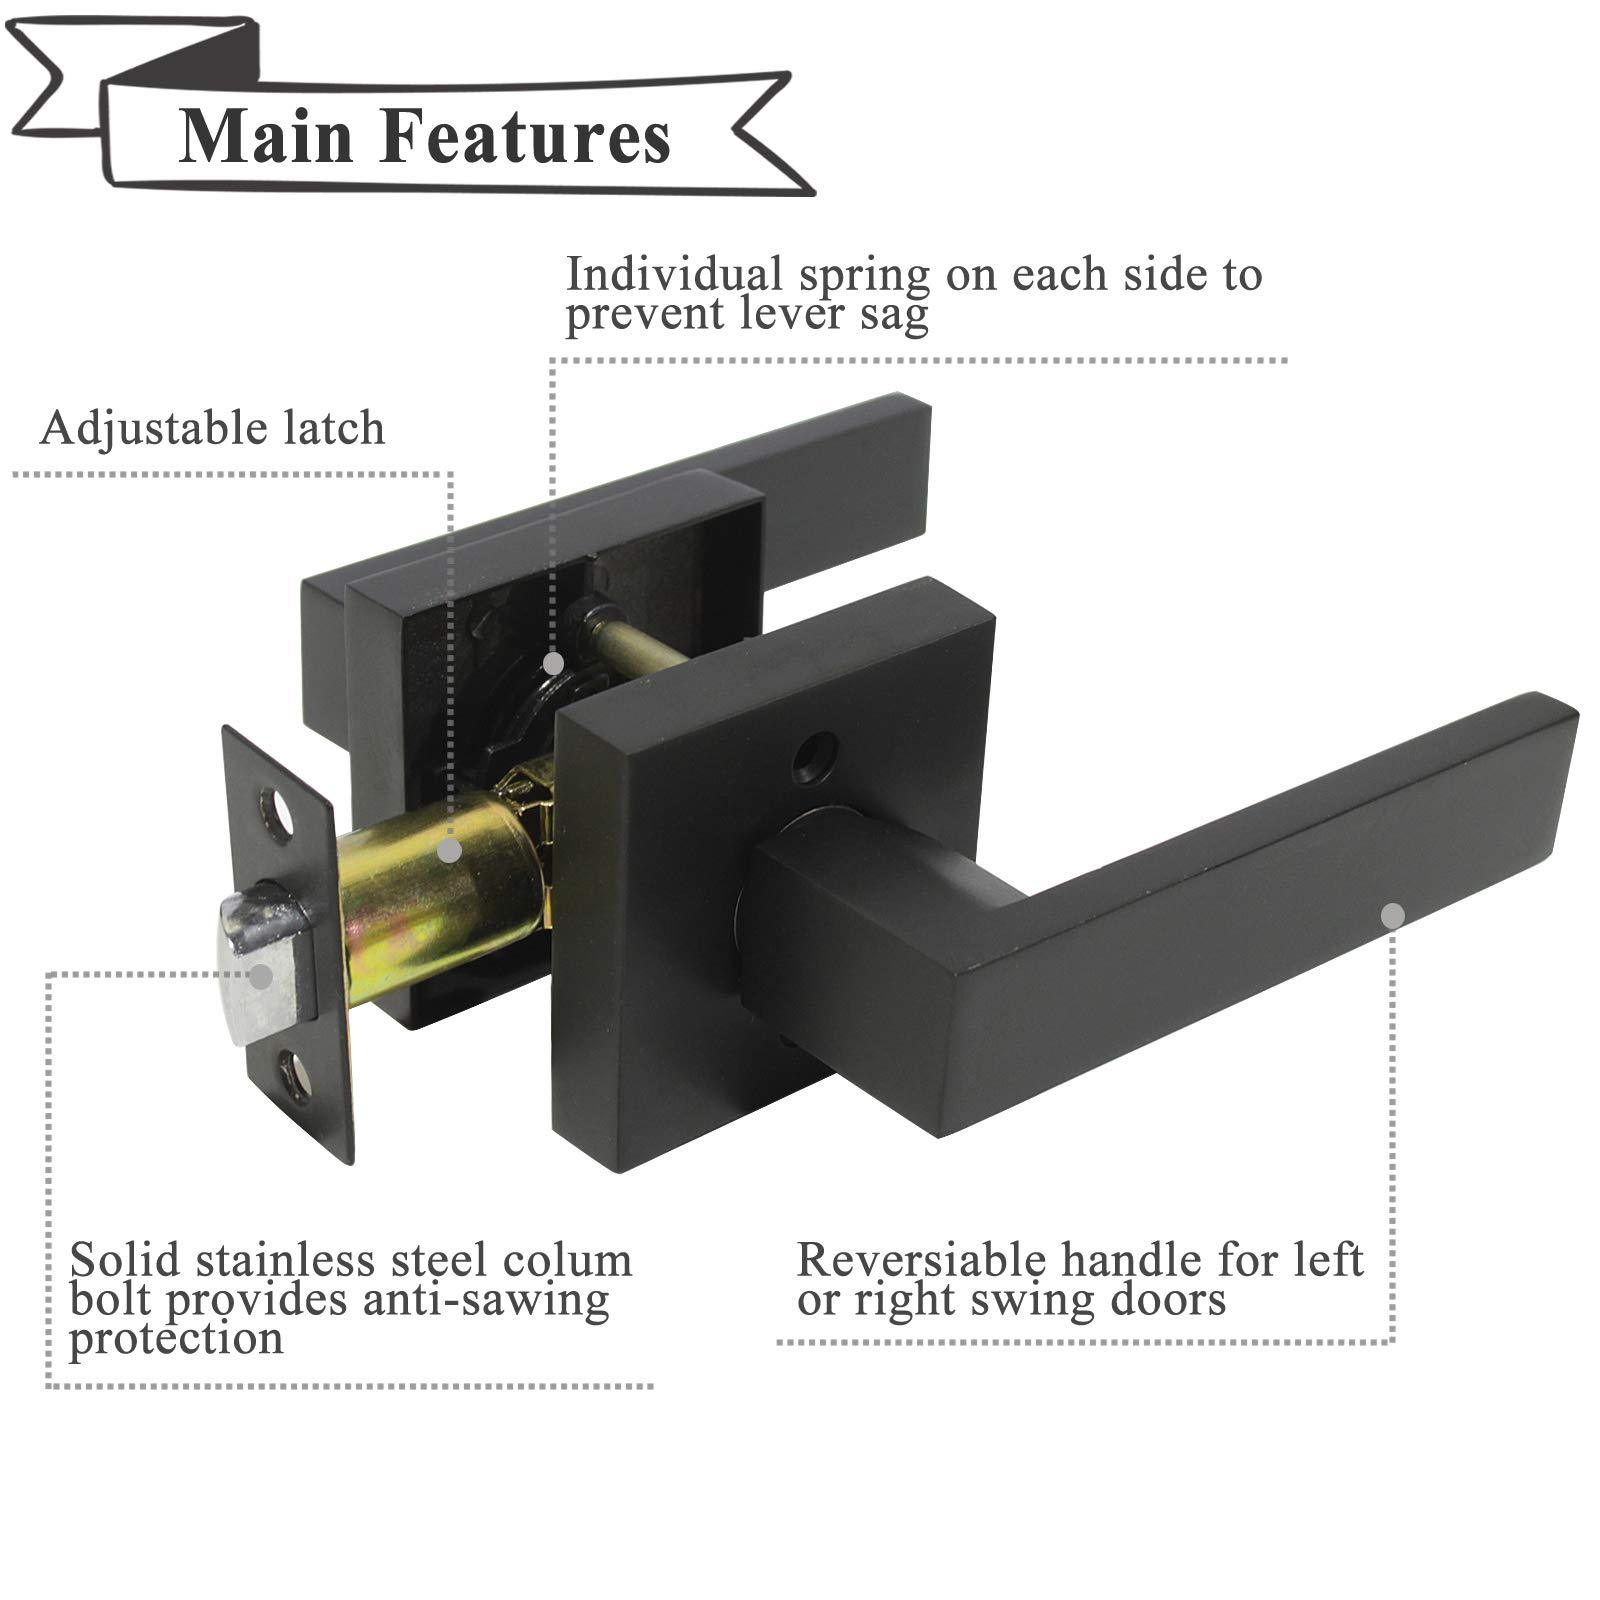 Passage Door Lever Handle Interior Non-Locking Lever Set for Hallway Doors or Closets with Black Finish, Reversible for Right & Left Side,10 Pack by Home Improvement Direct (Image #4)